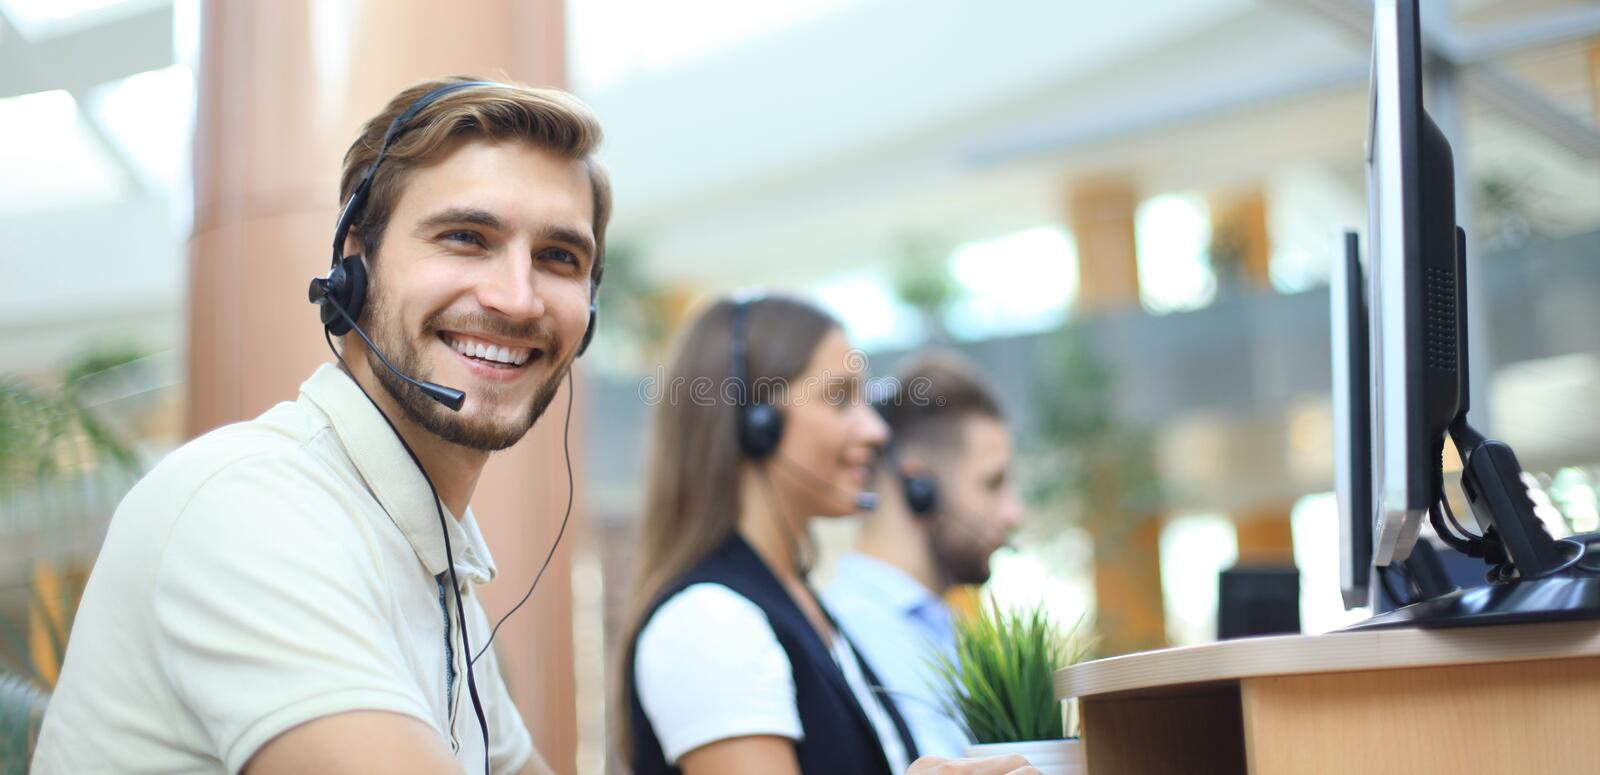 Attractive positive young businesspeople and colleagues in a call center office. royalty free stock photo